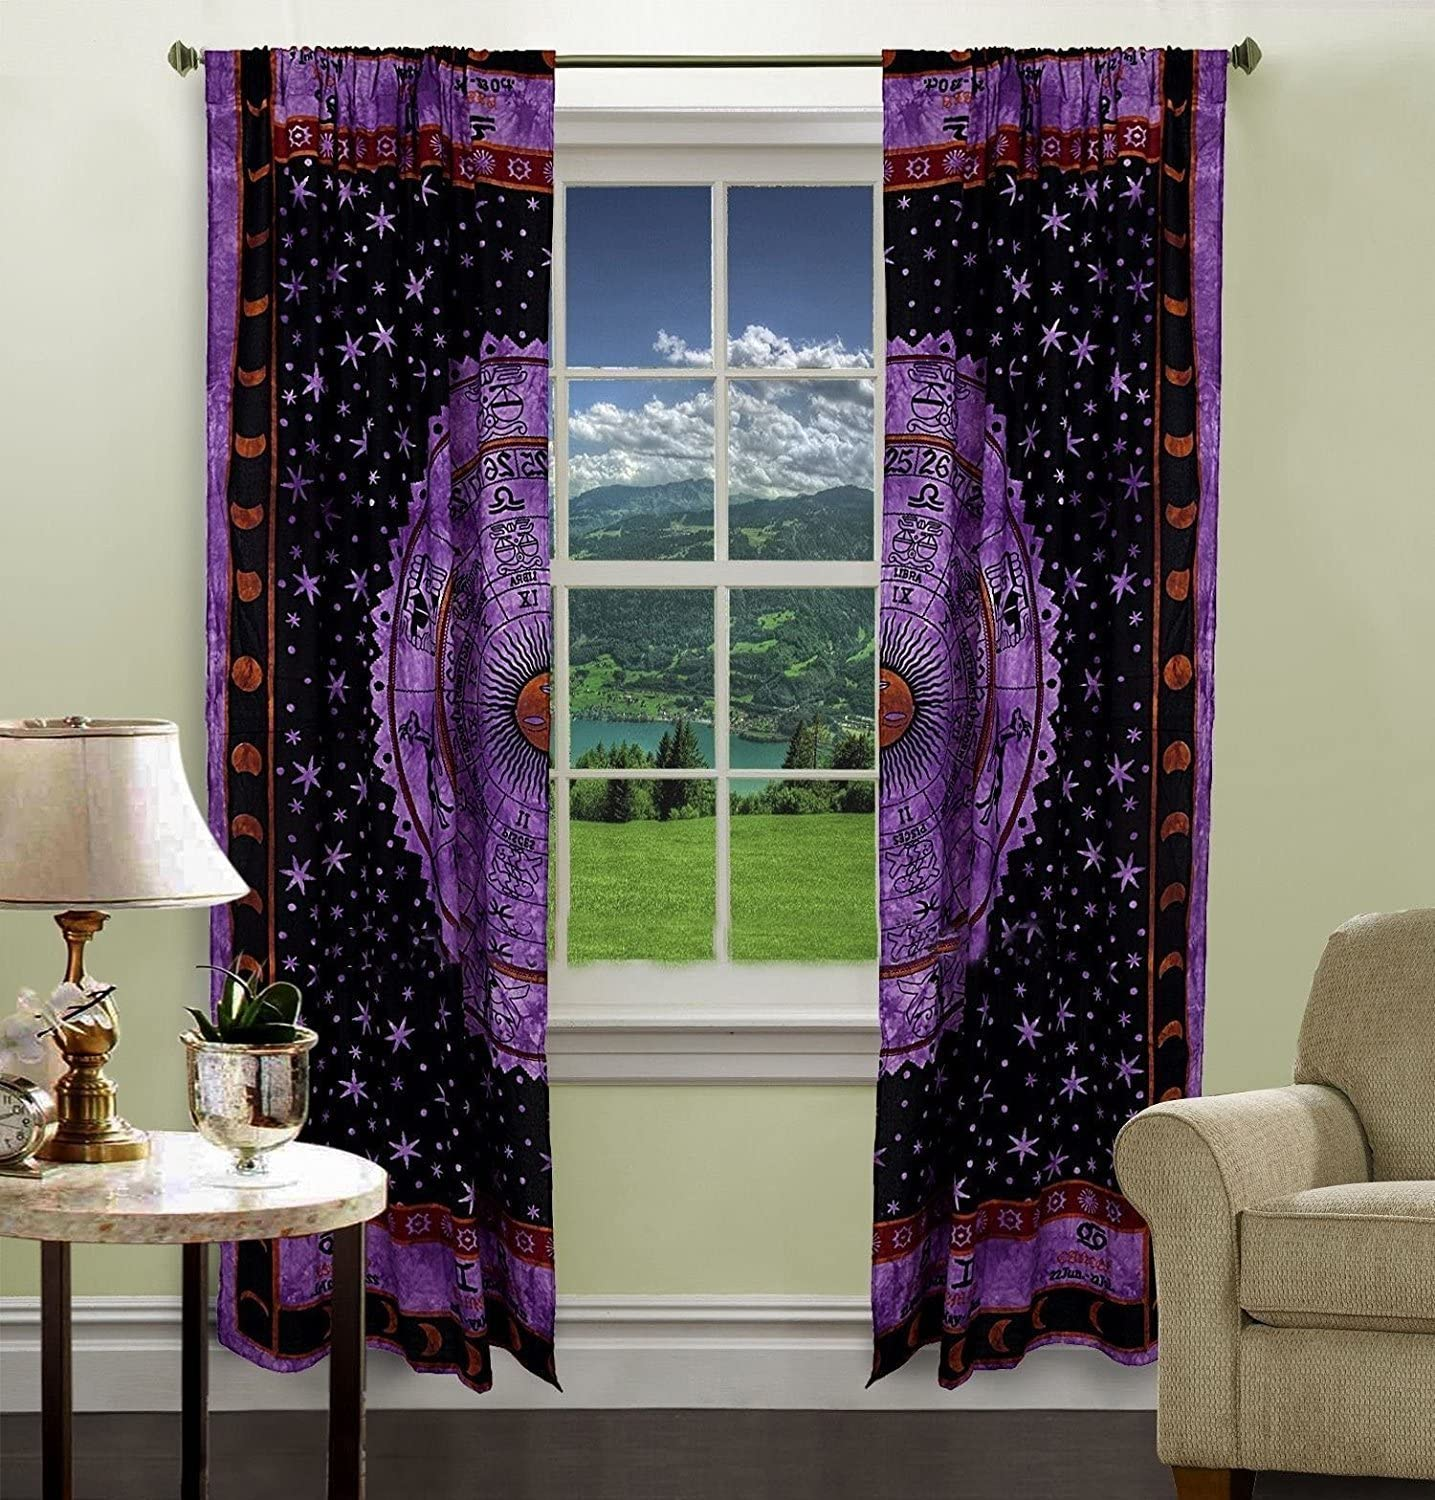 Purple Color Zodiac Astrology Tapestry Curtain Home Decor Room Darkening Window Treatments & Valance Balcony Sheer Room Divider Bedroom Decor Handmade Wall Hanging Window Curtains Boho Panels